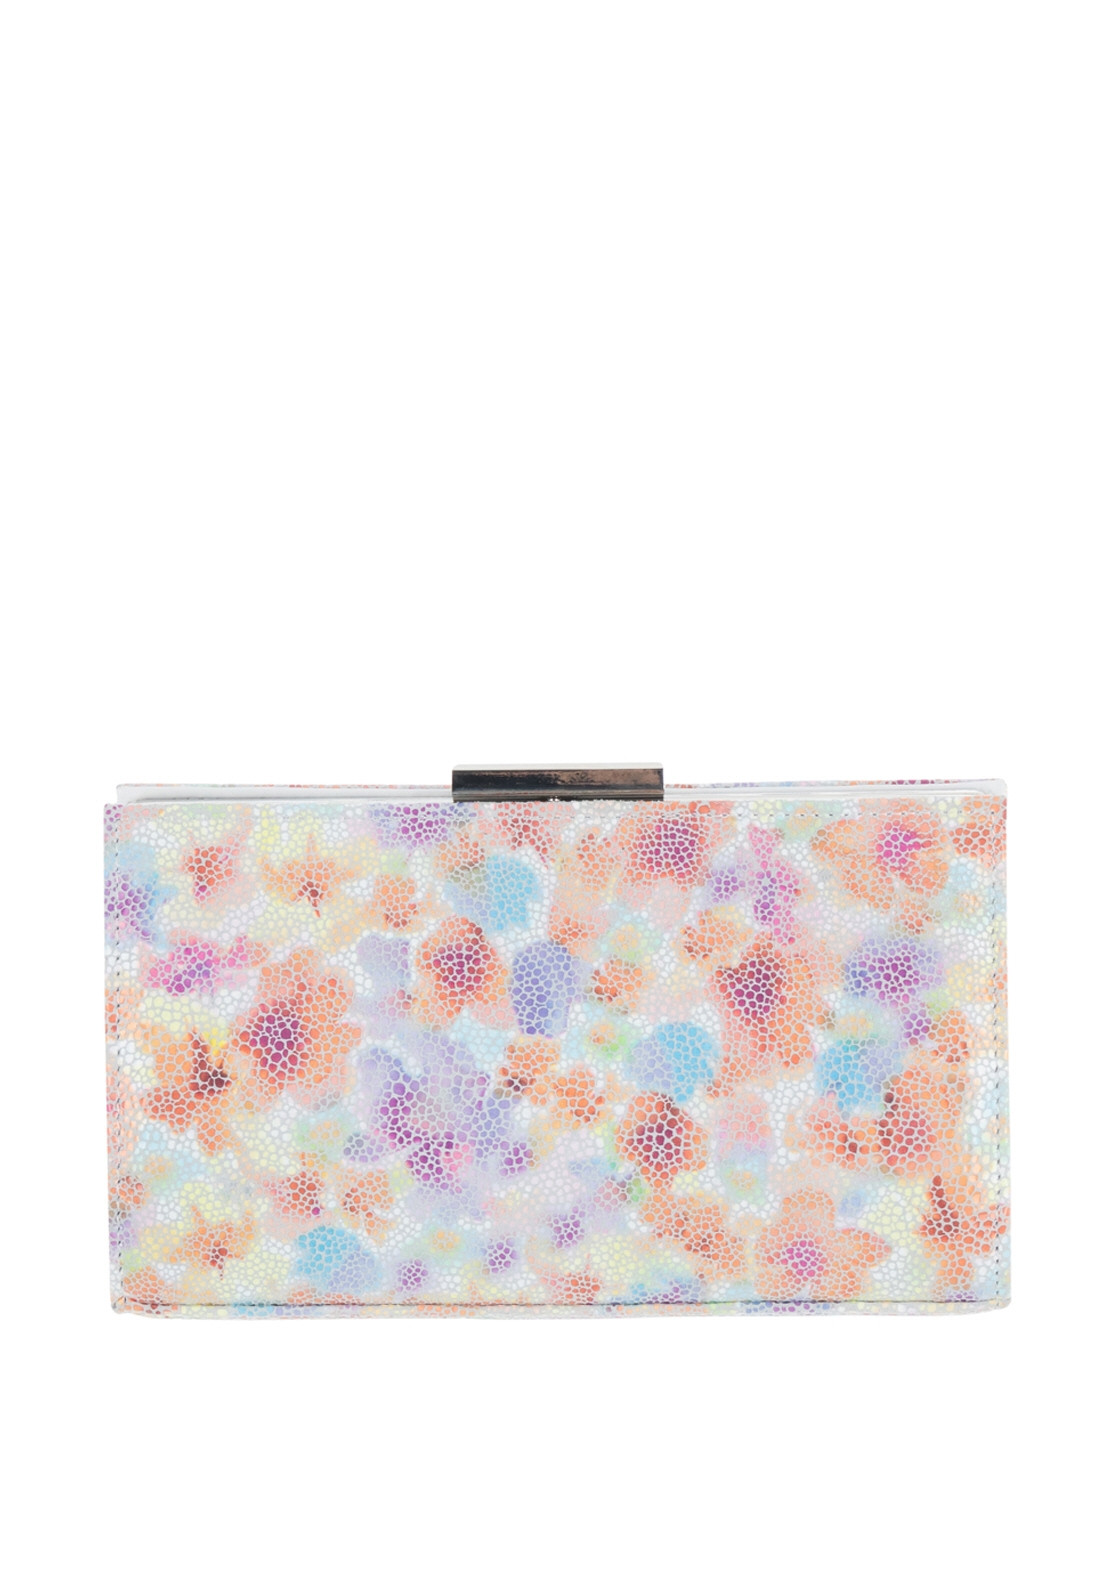 4b99329ee0d0 Van Dal Zinnia Print Leather Clutch Bag, Multi-Coloured. Be the first to  review this product